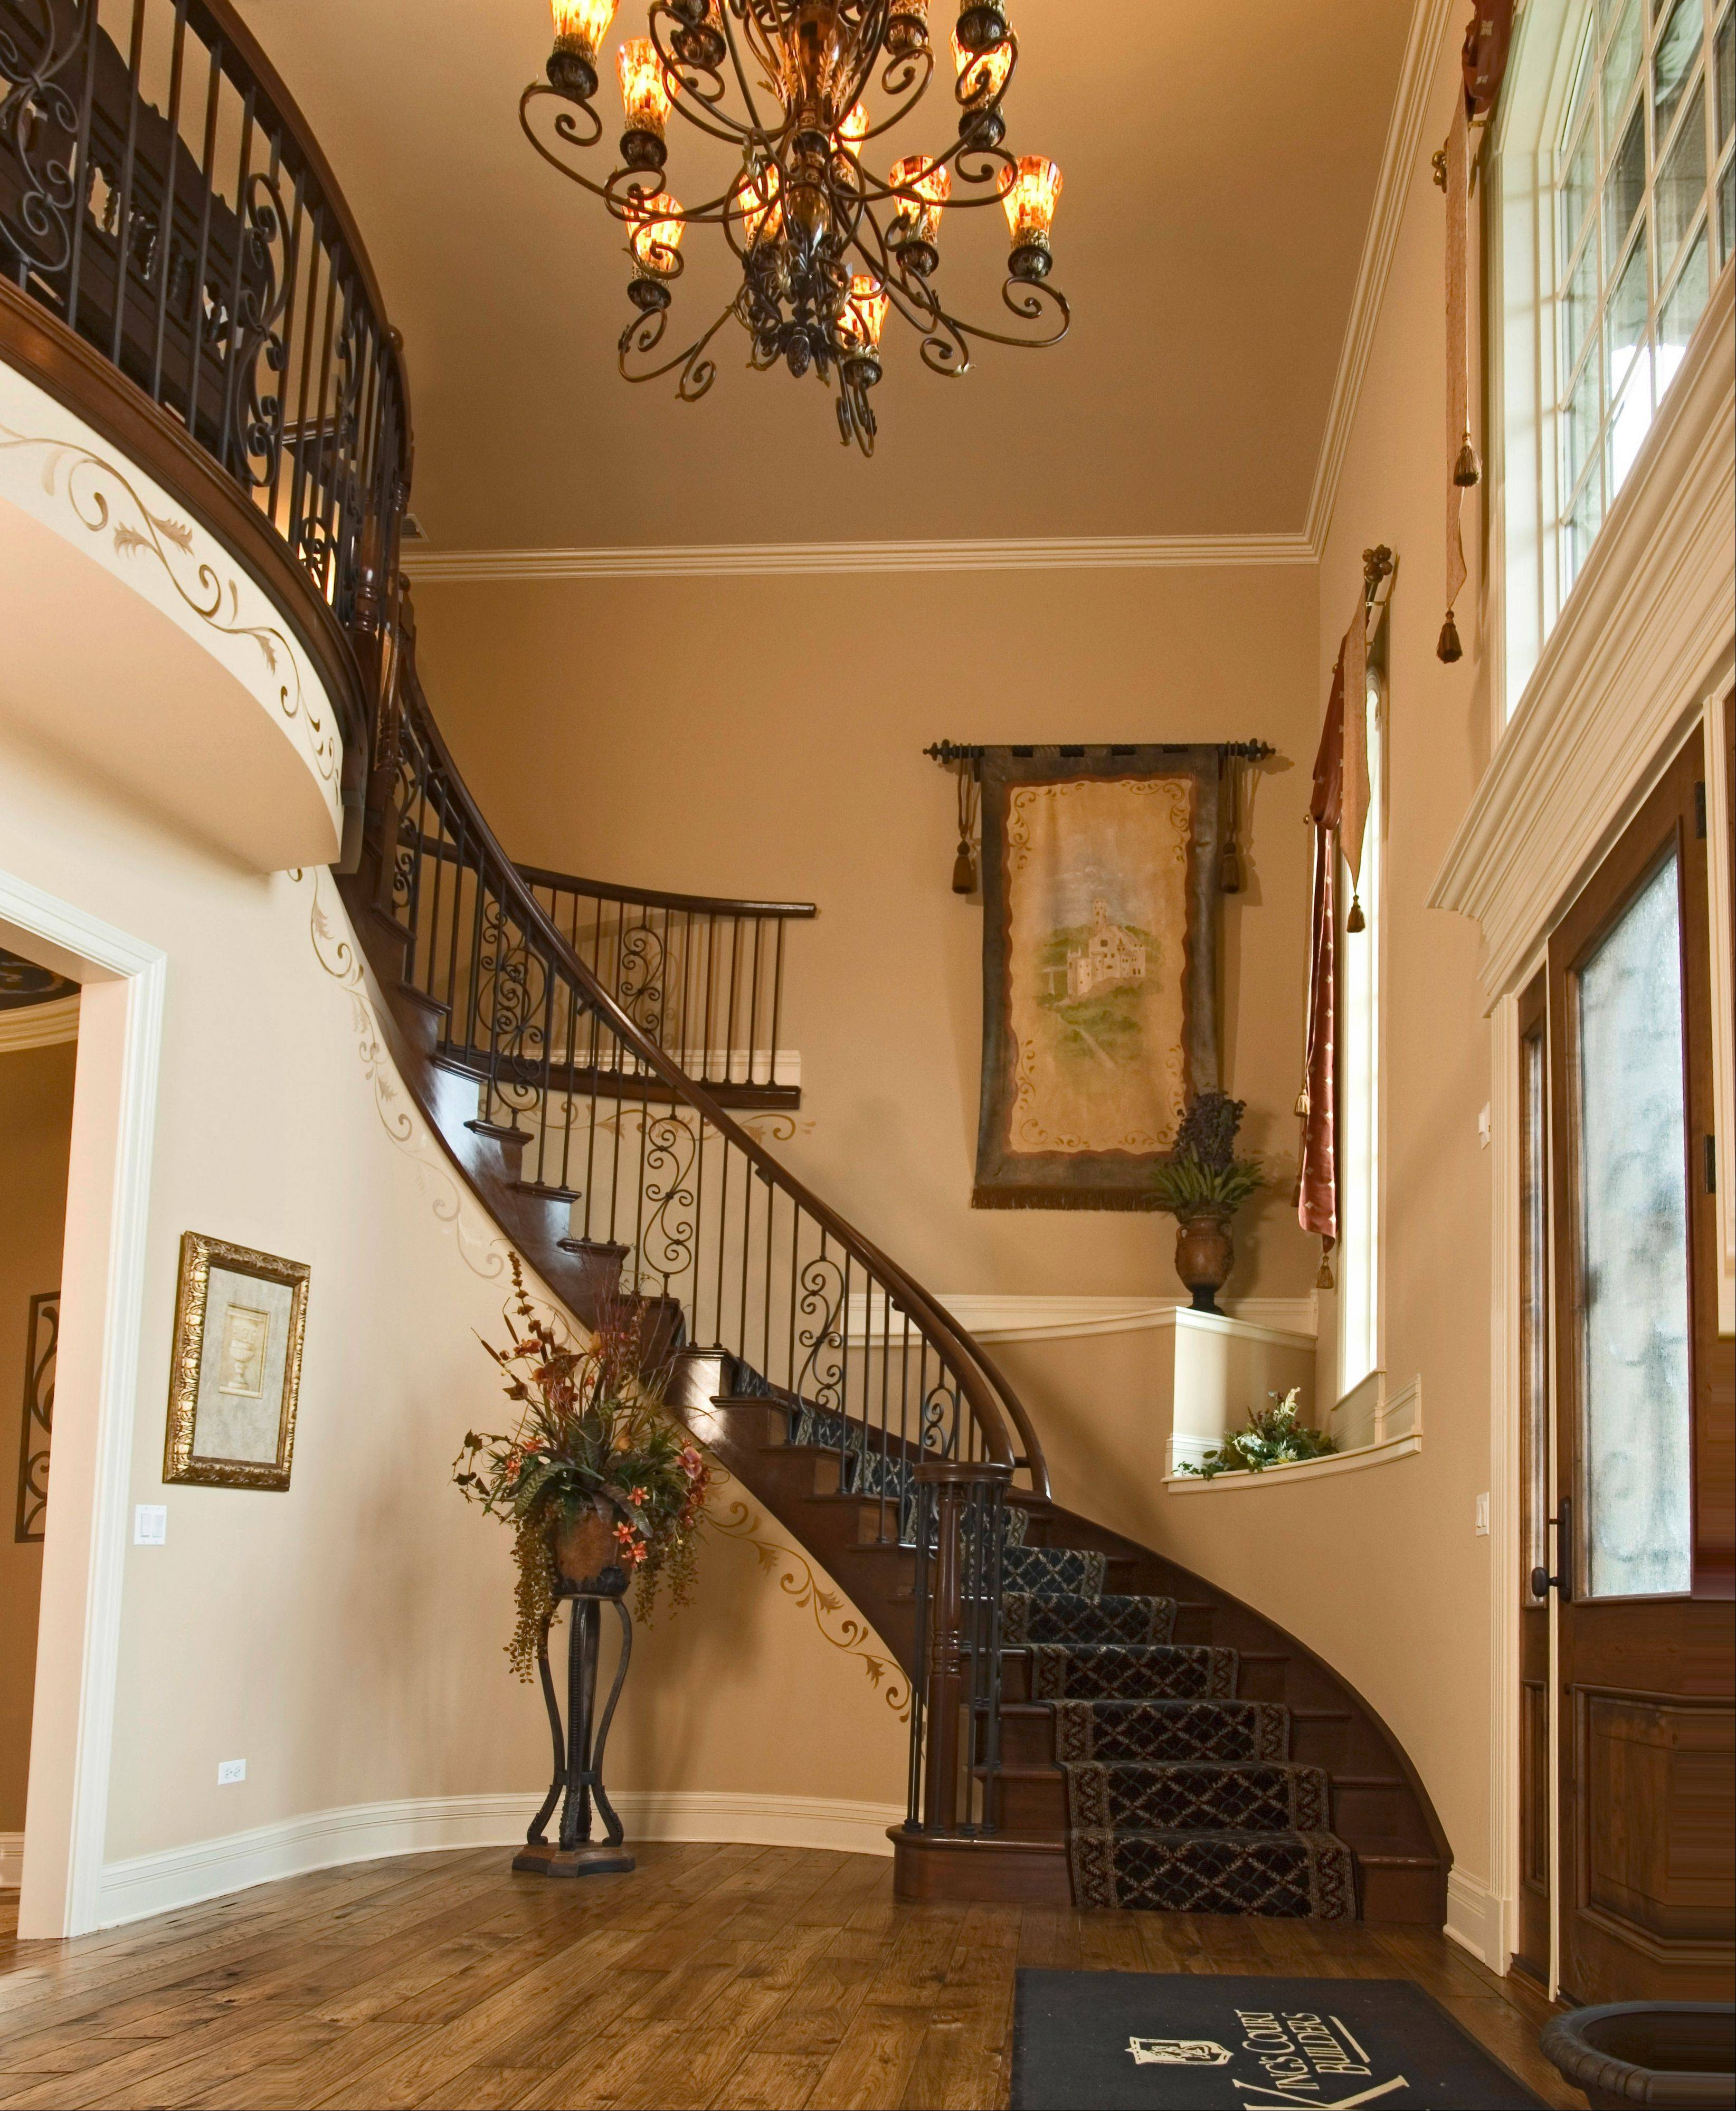 King's Court Builders is getting positive feedback on its custom winding staircase in its model at Lakeside of Grande Park in Plainfield.